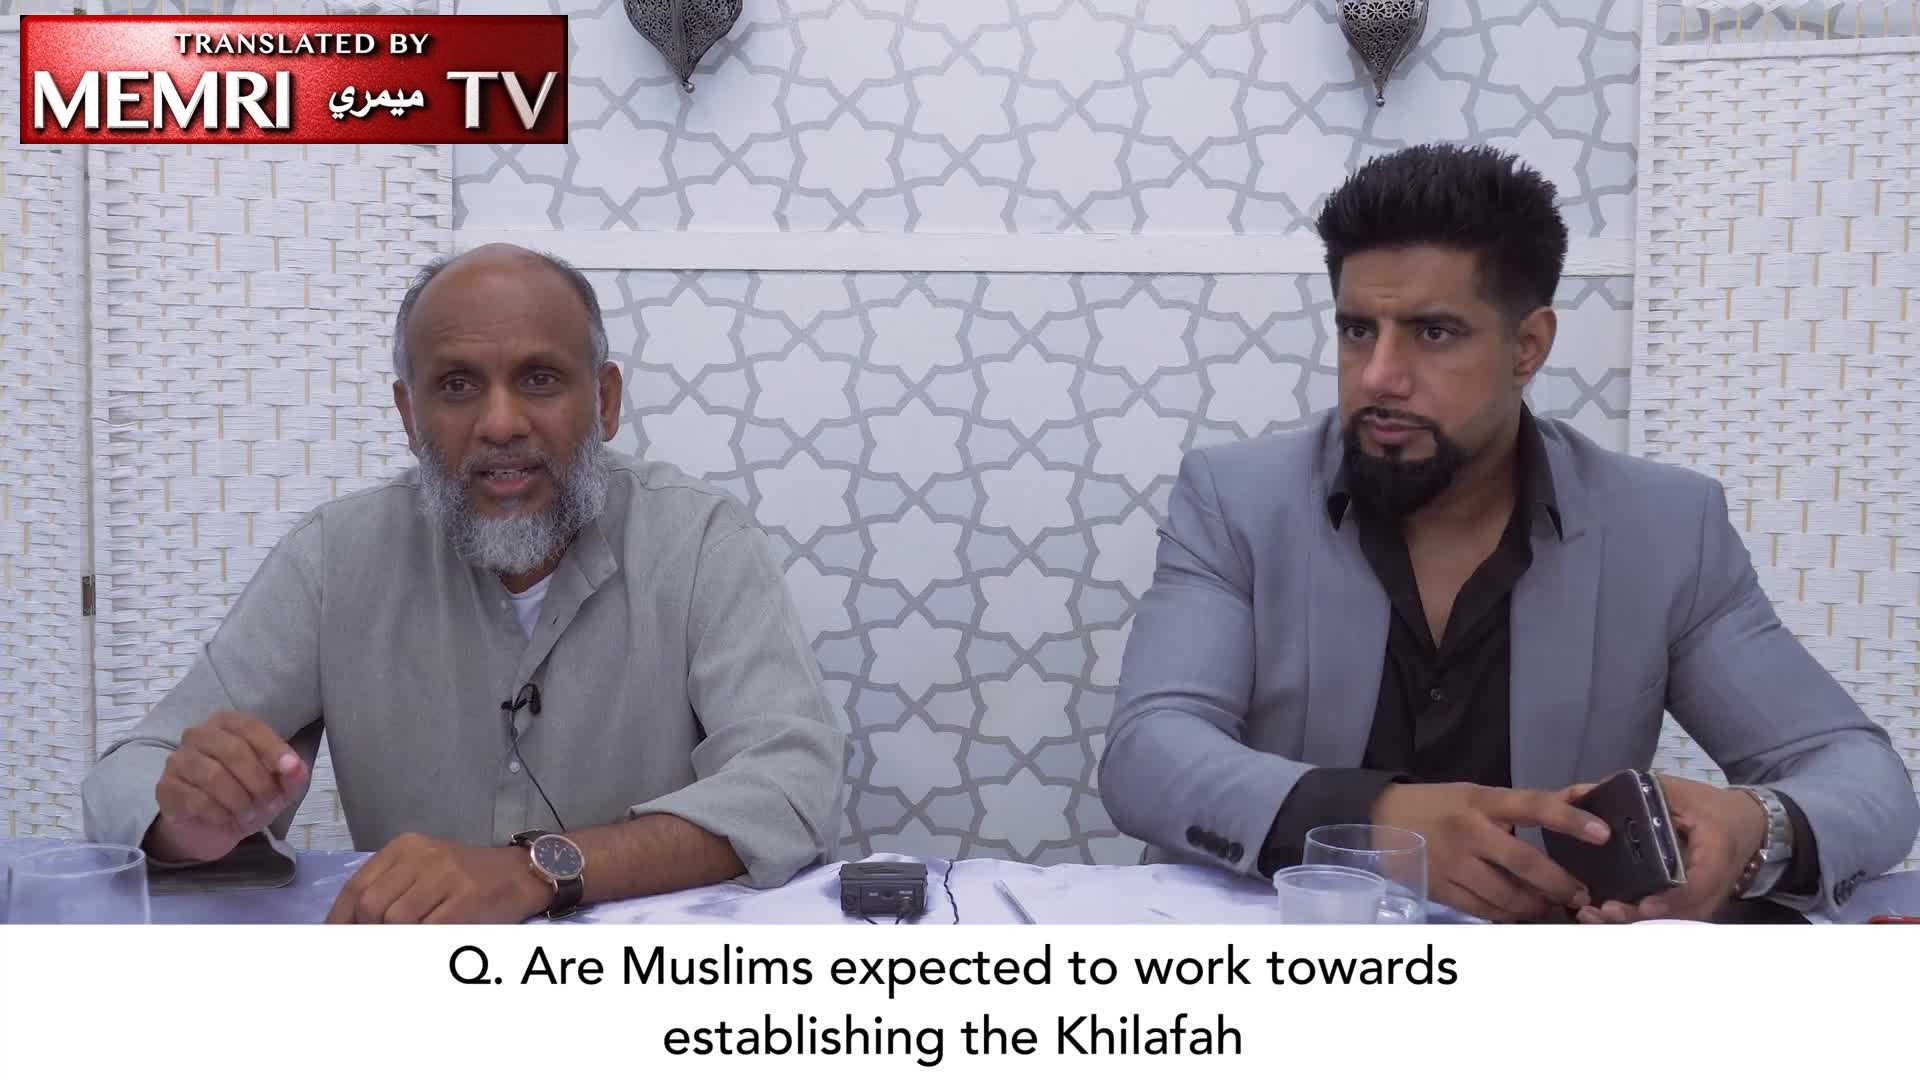 U.K. Cleric Abu Layth Al-Maliki: Groups That Want to Establish a Caliphate Believe in a Bollywood Fantasy Version of Islamic History - Archival